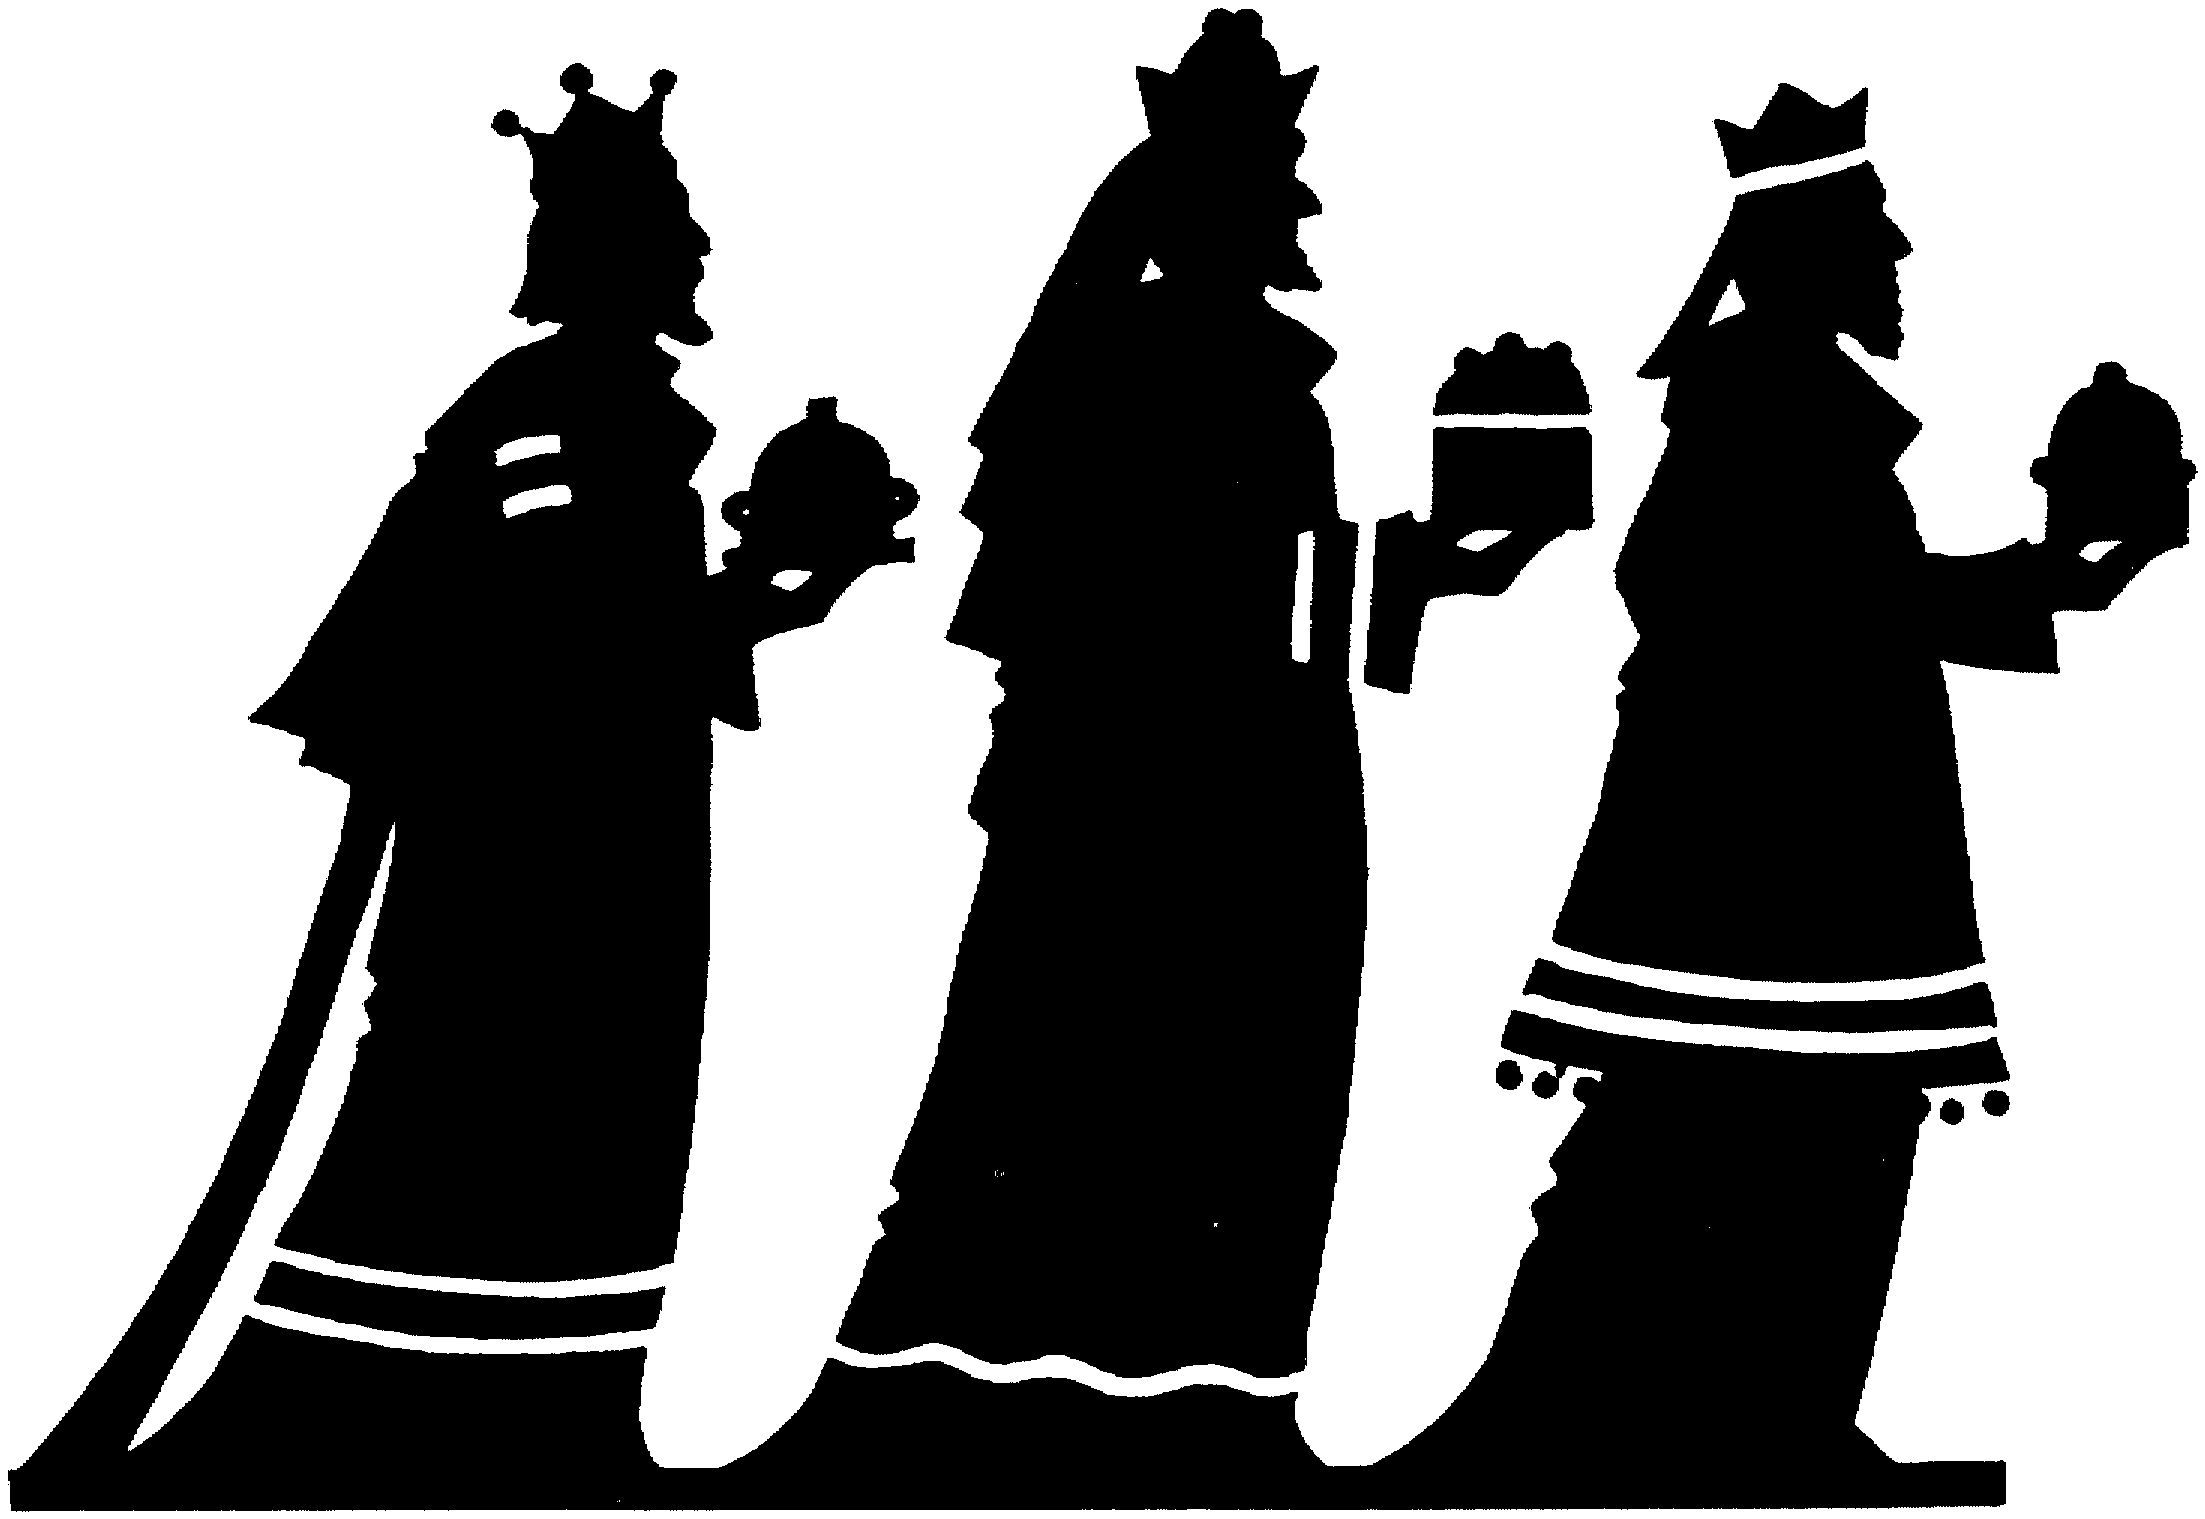 Free 3 Wise Men Cliparts, Download Free Clip Art, Free Clip Art on.